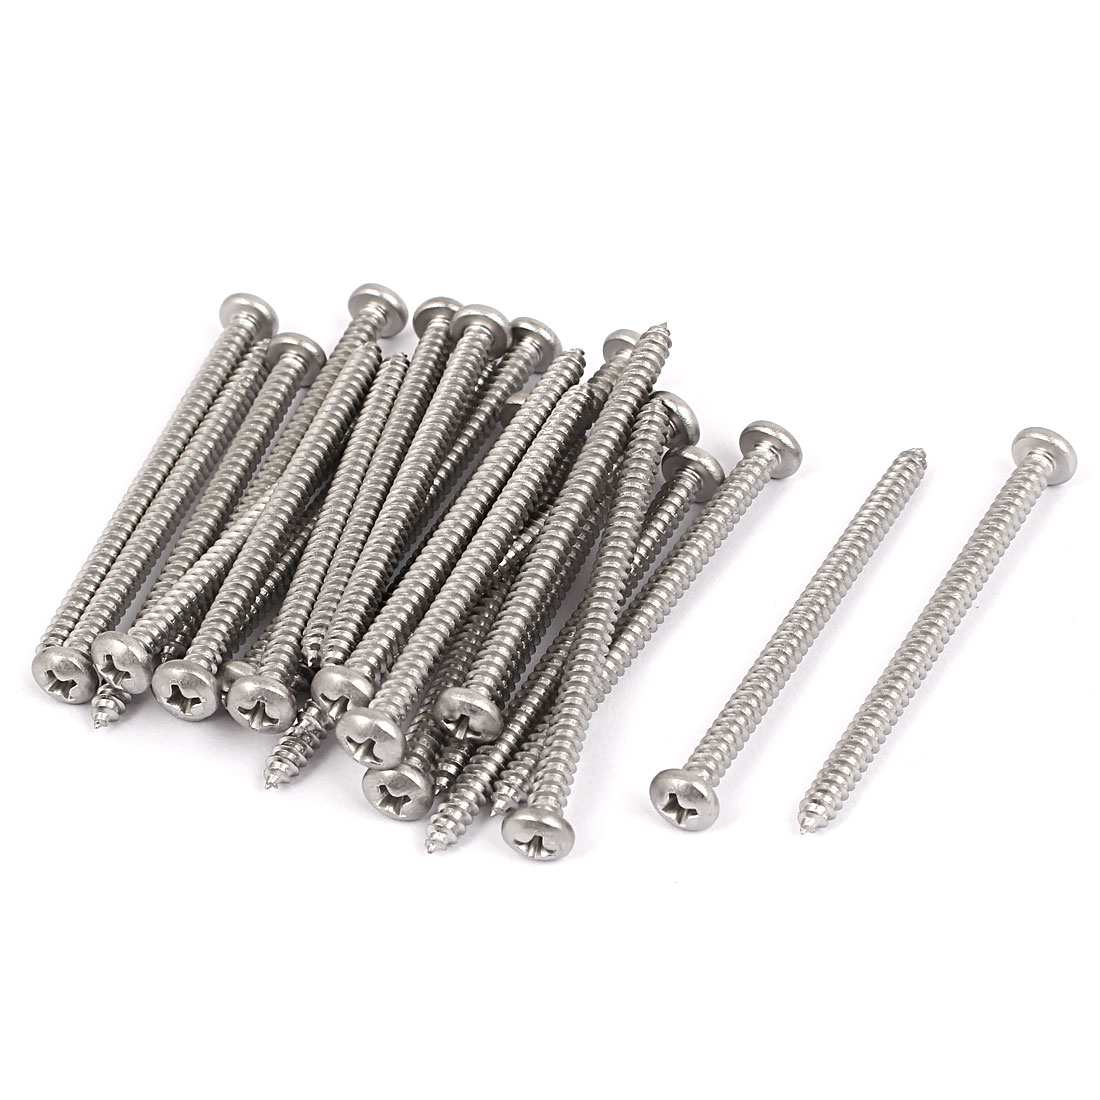 #8 M4.2x60mm Stainless Steel Phillips Round Pan Head Self Tapping Screws 25pcs